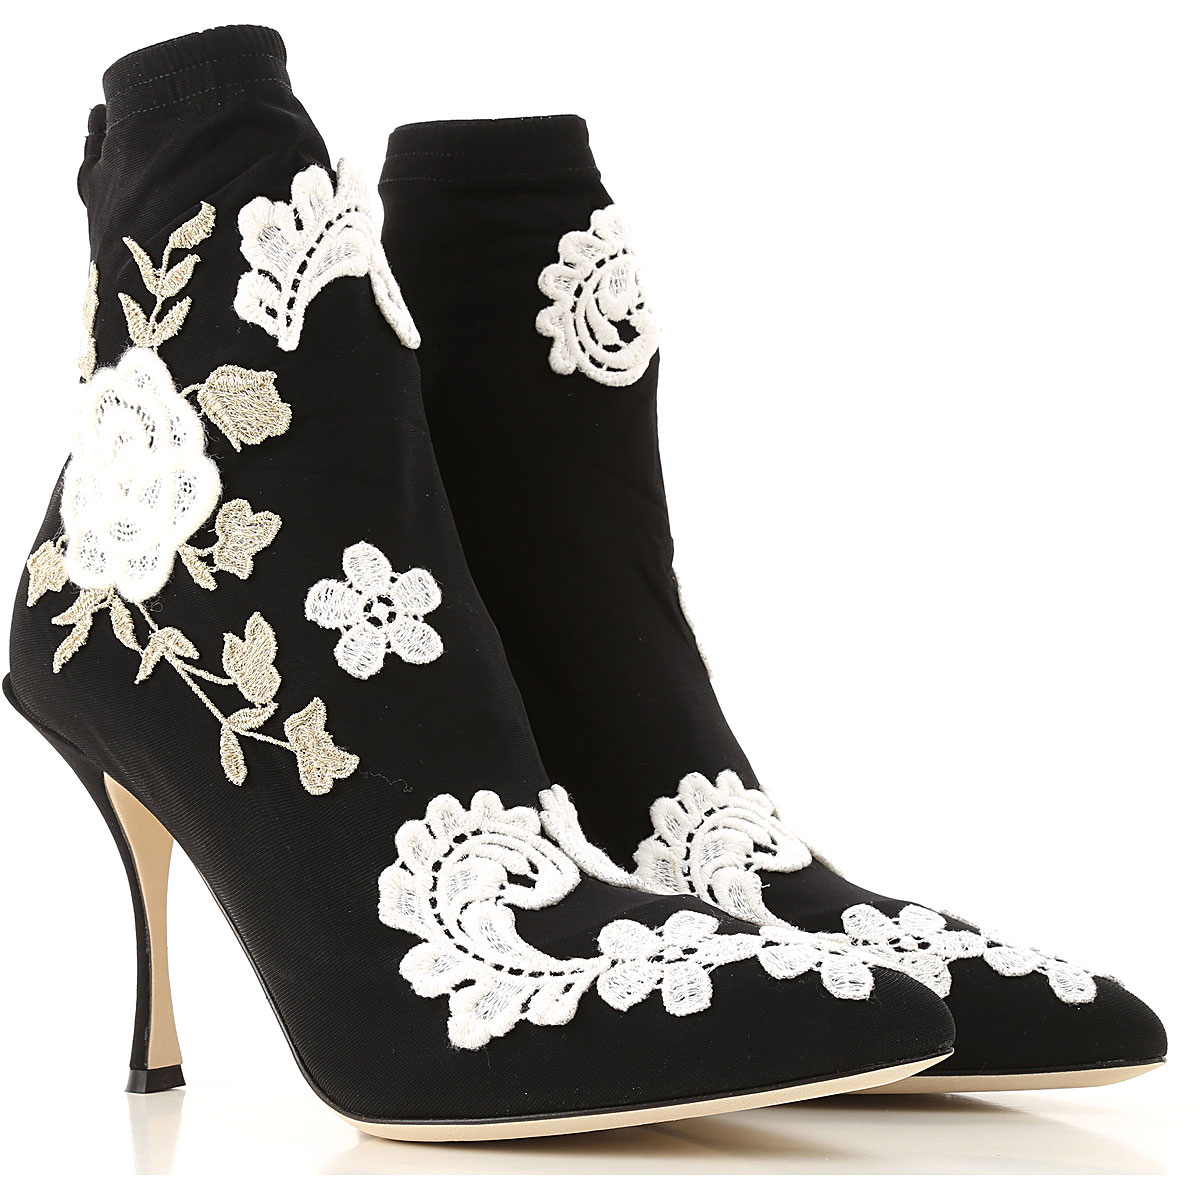 Dolce & Gabbana Boots moterims, Booties  in Outlet, juodi, Stretch Fabric, 2019, 35 36.5 38.5